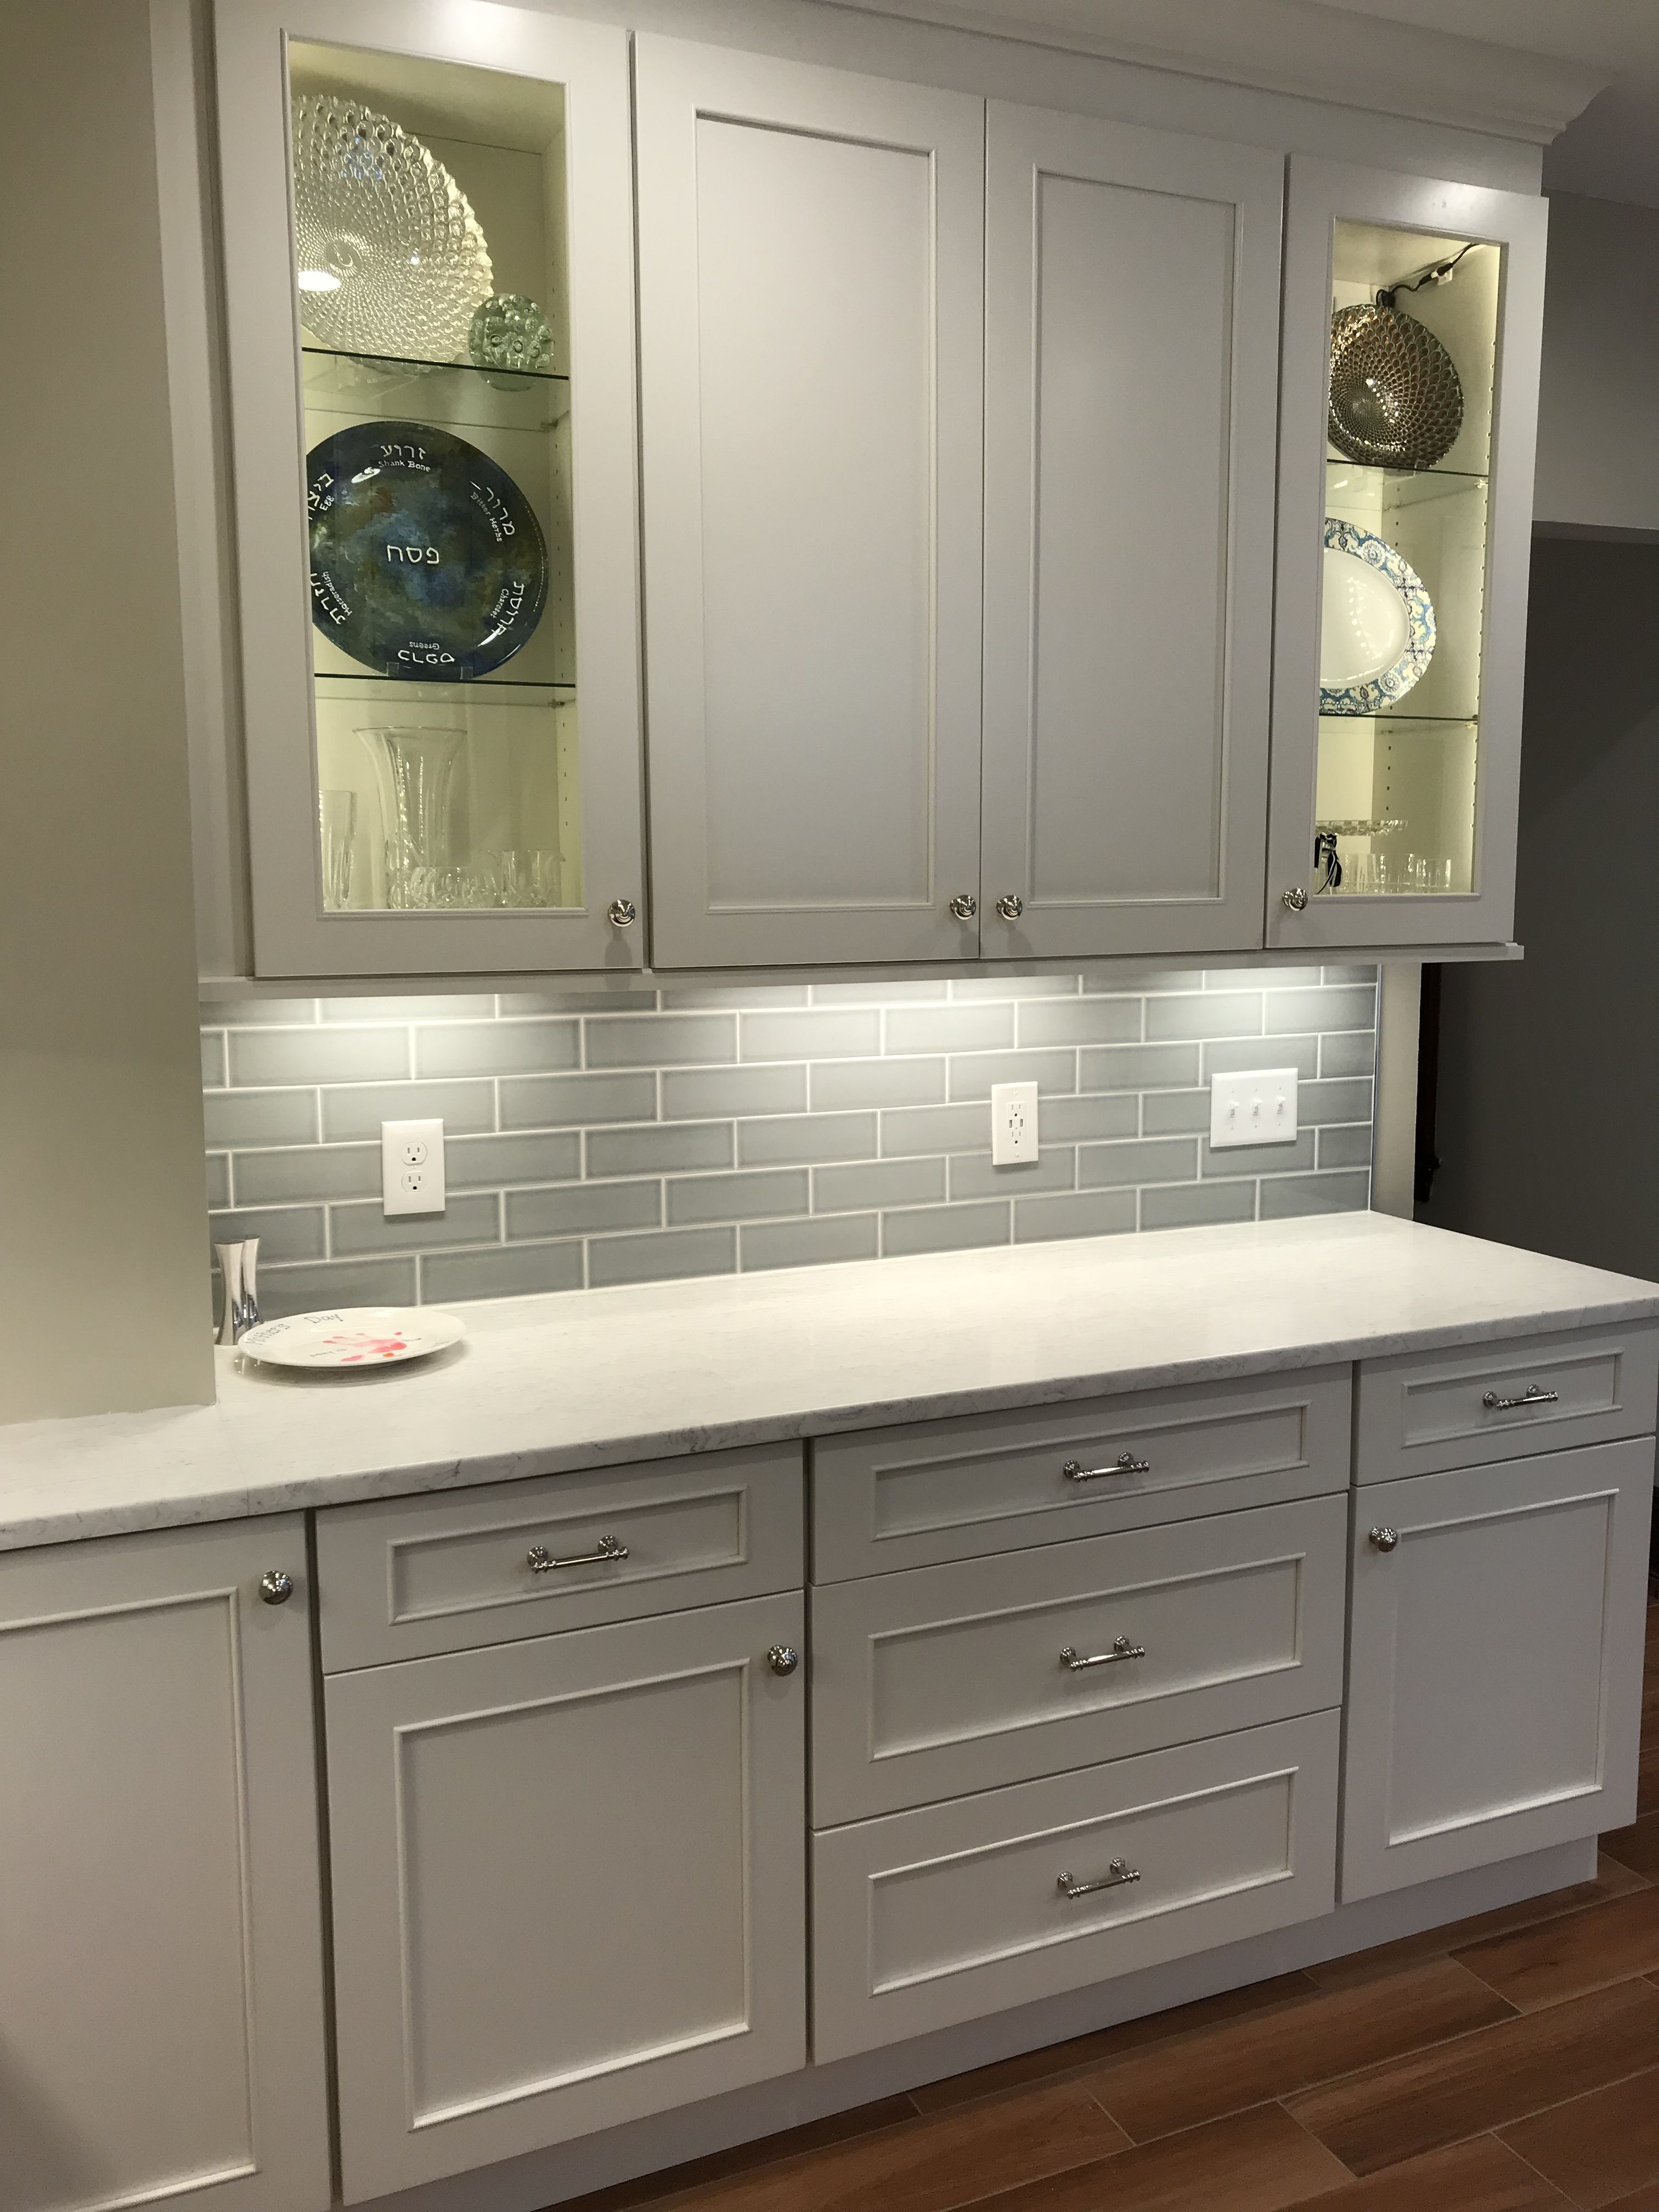 Kitchen Renovation Complete Rutherford Nj Fabuwood Vista Blanc Cabinets Countertop Is Timber White Trendy Kitchen Tile Kitchen Renovation Wood Tile Kitchen